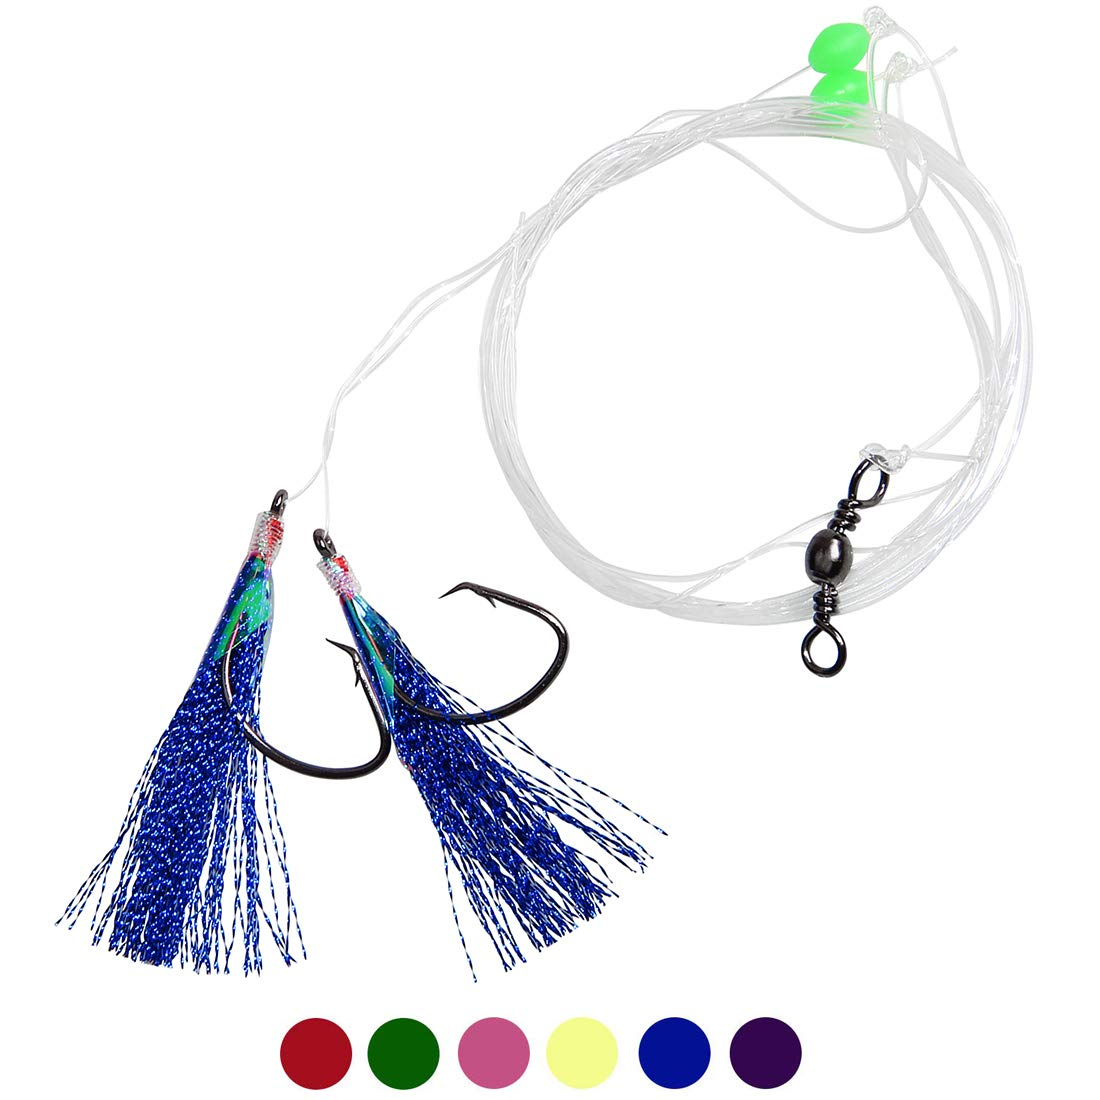 OROOTL Fishing Rigs Flasher Lure Rigs Saltwater, 6pcs Fishing Bait Rigs with Glow Fishing Beads High Carbon Steel Hook Metallic Flasher Mono Line Freshwater Saltwater Bait Rig Tackle